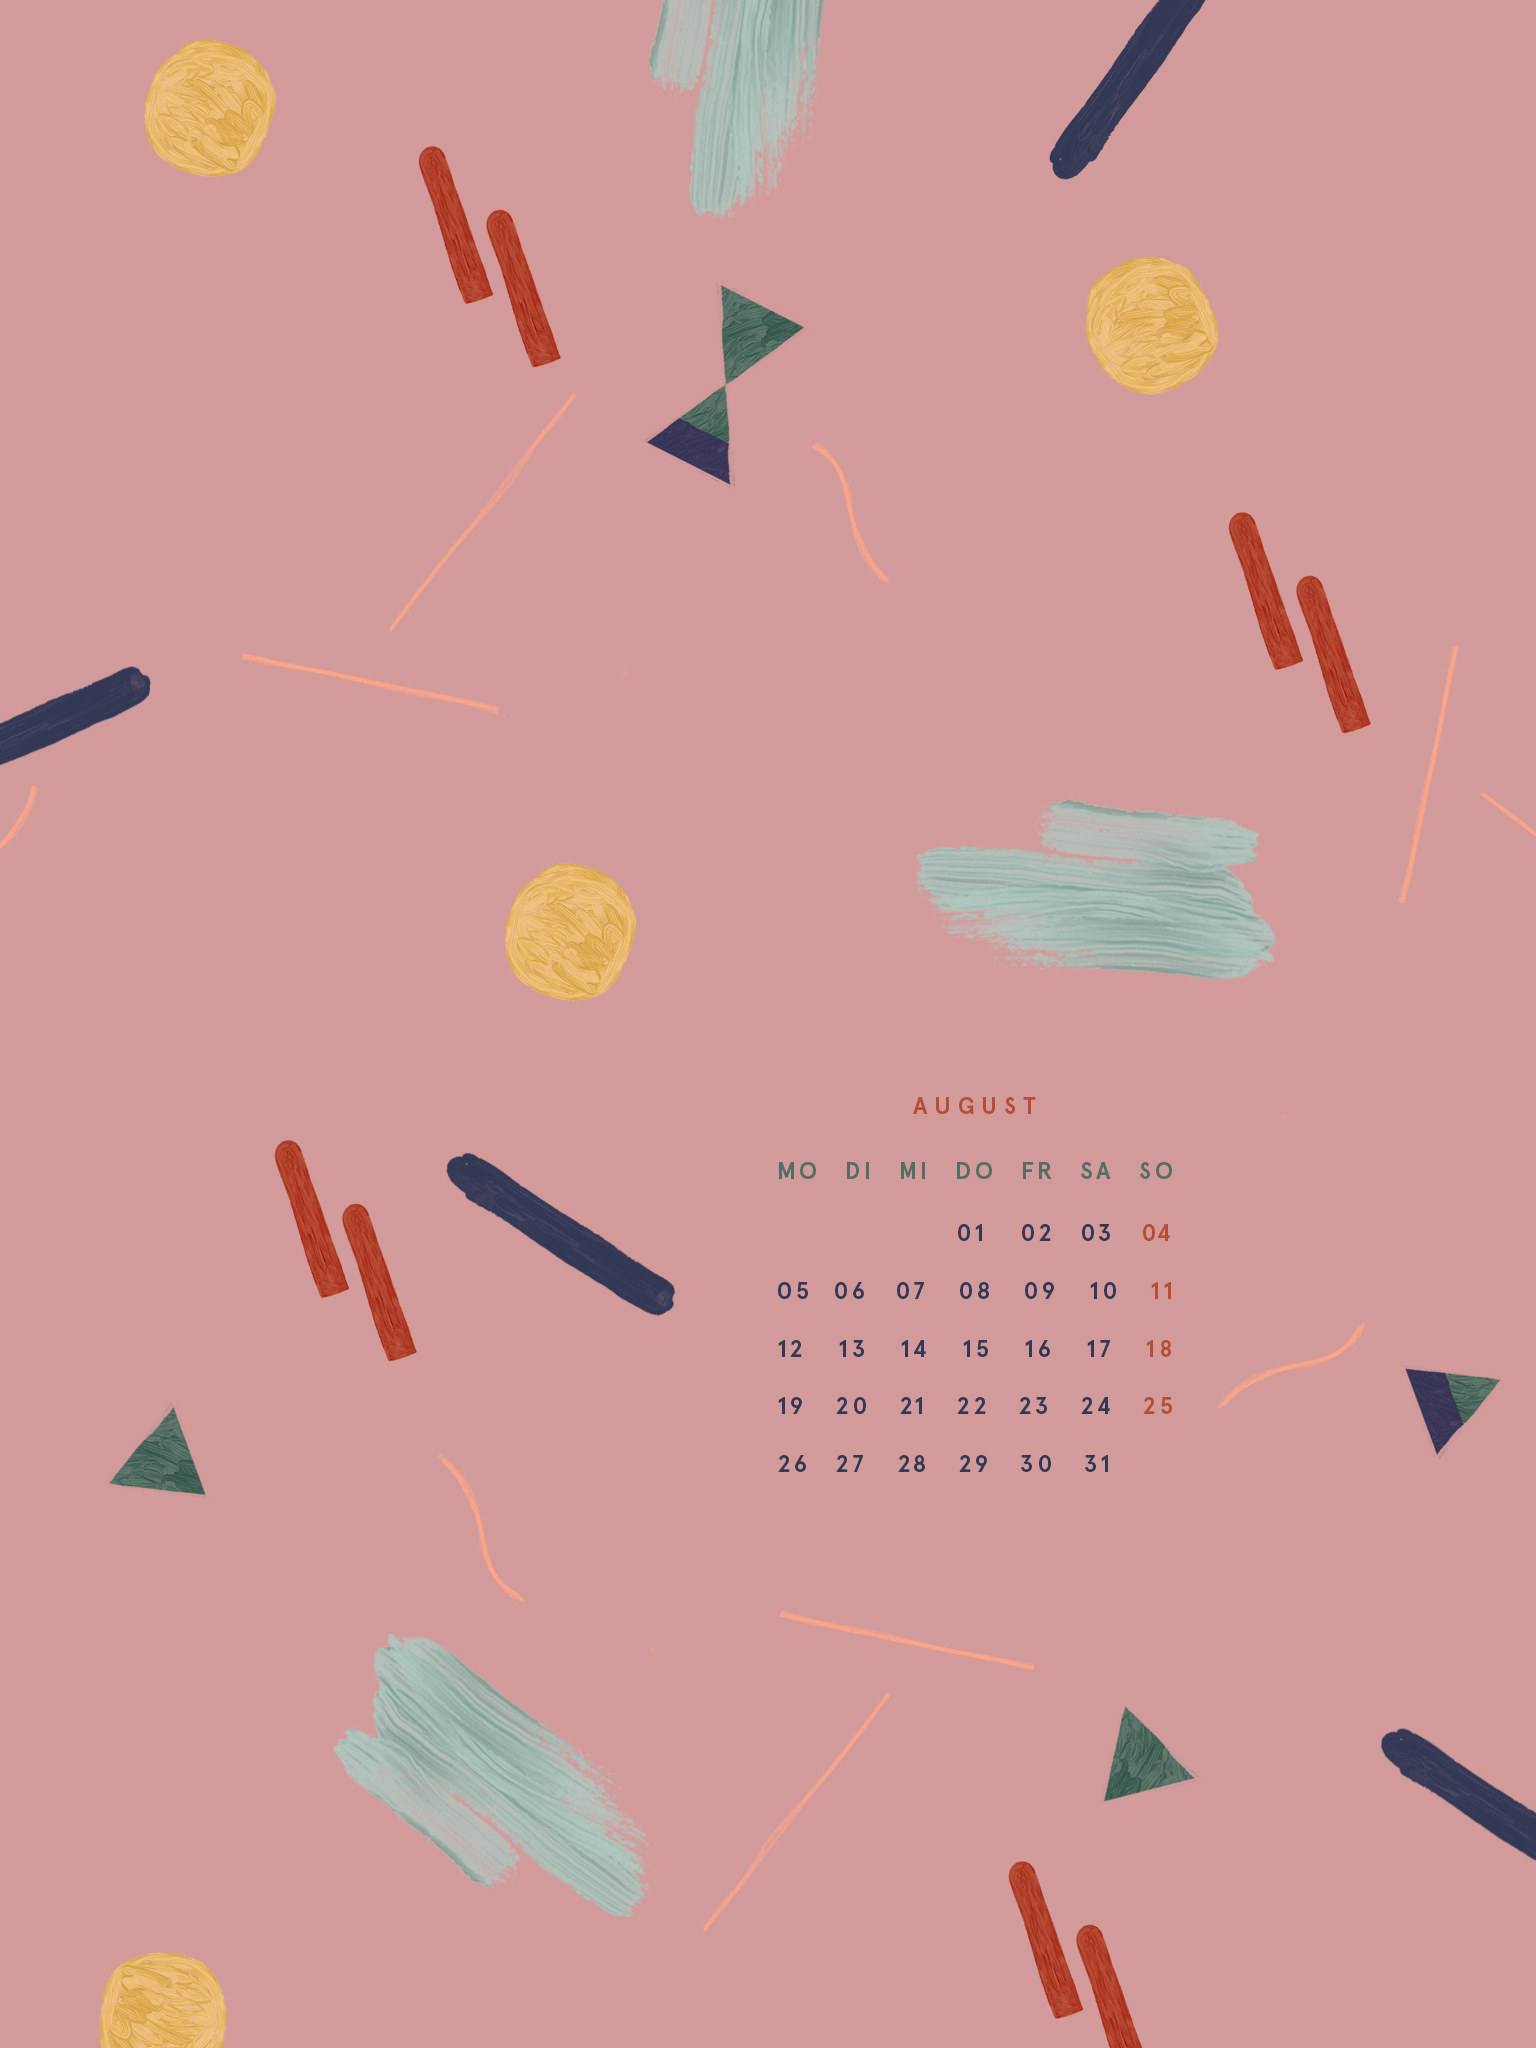 Free Desktop Wallpaper August 2019